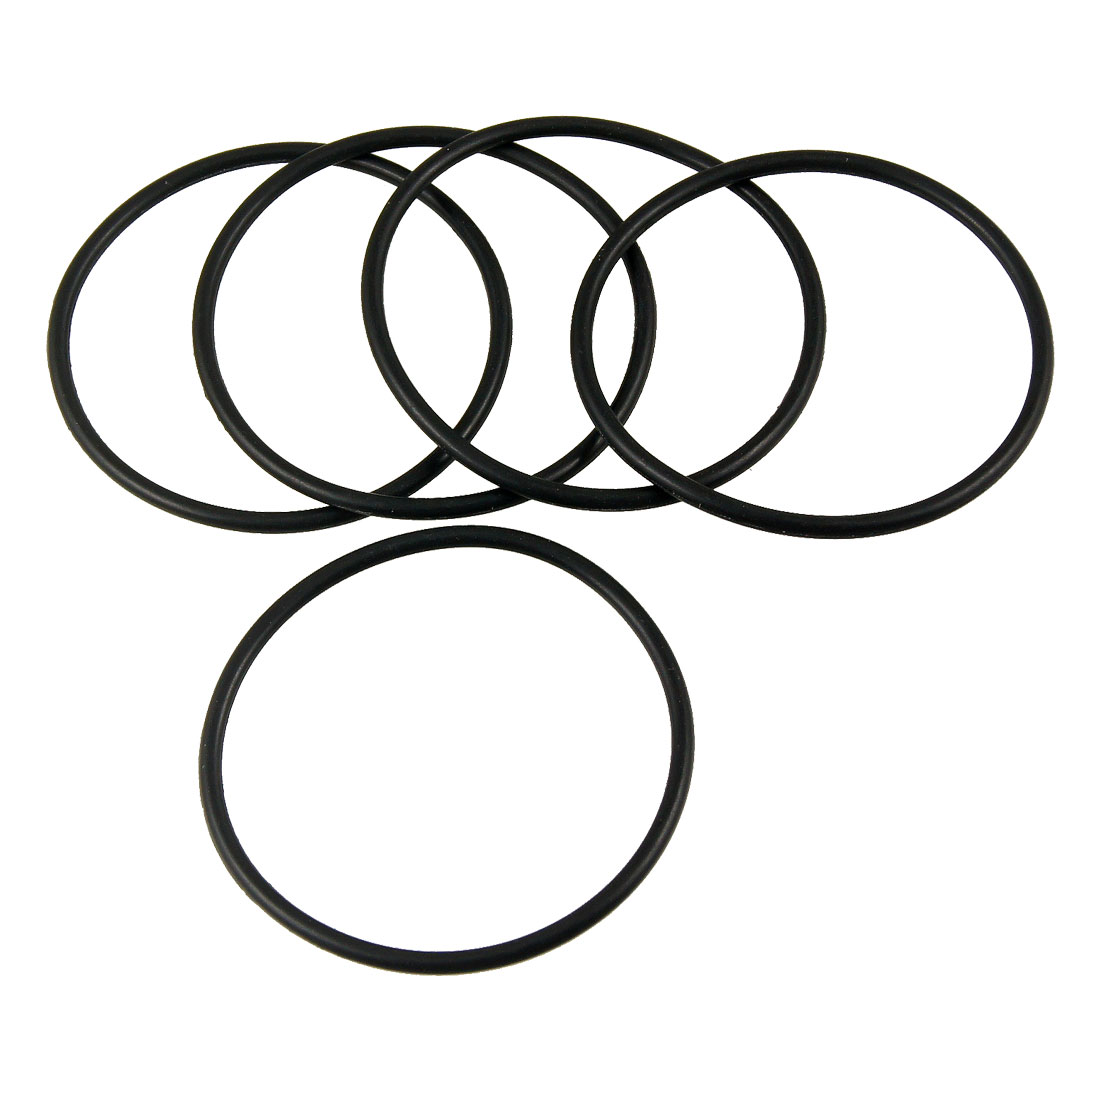 47.2 mm Inner Diameter 52 mm Outer Diameter 2.4 mm Wide O-Rings Nitrile Rubber Round Seal Gasket Pack of 20